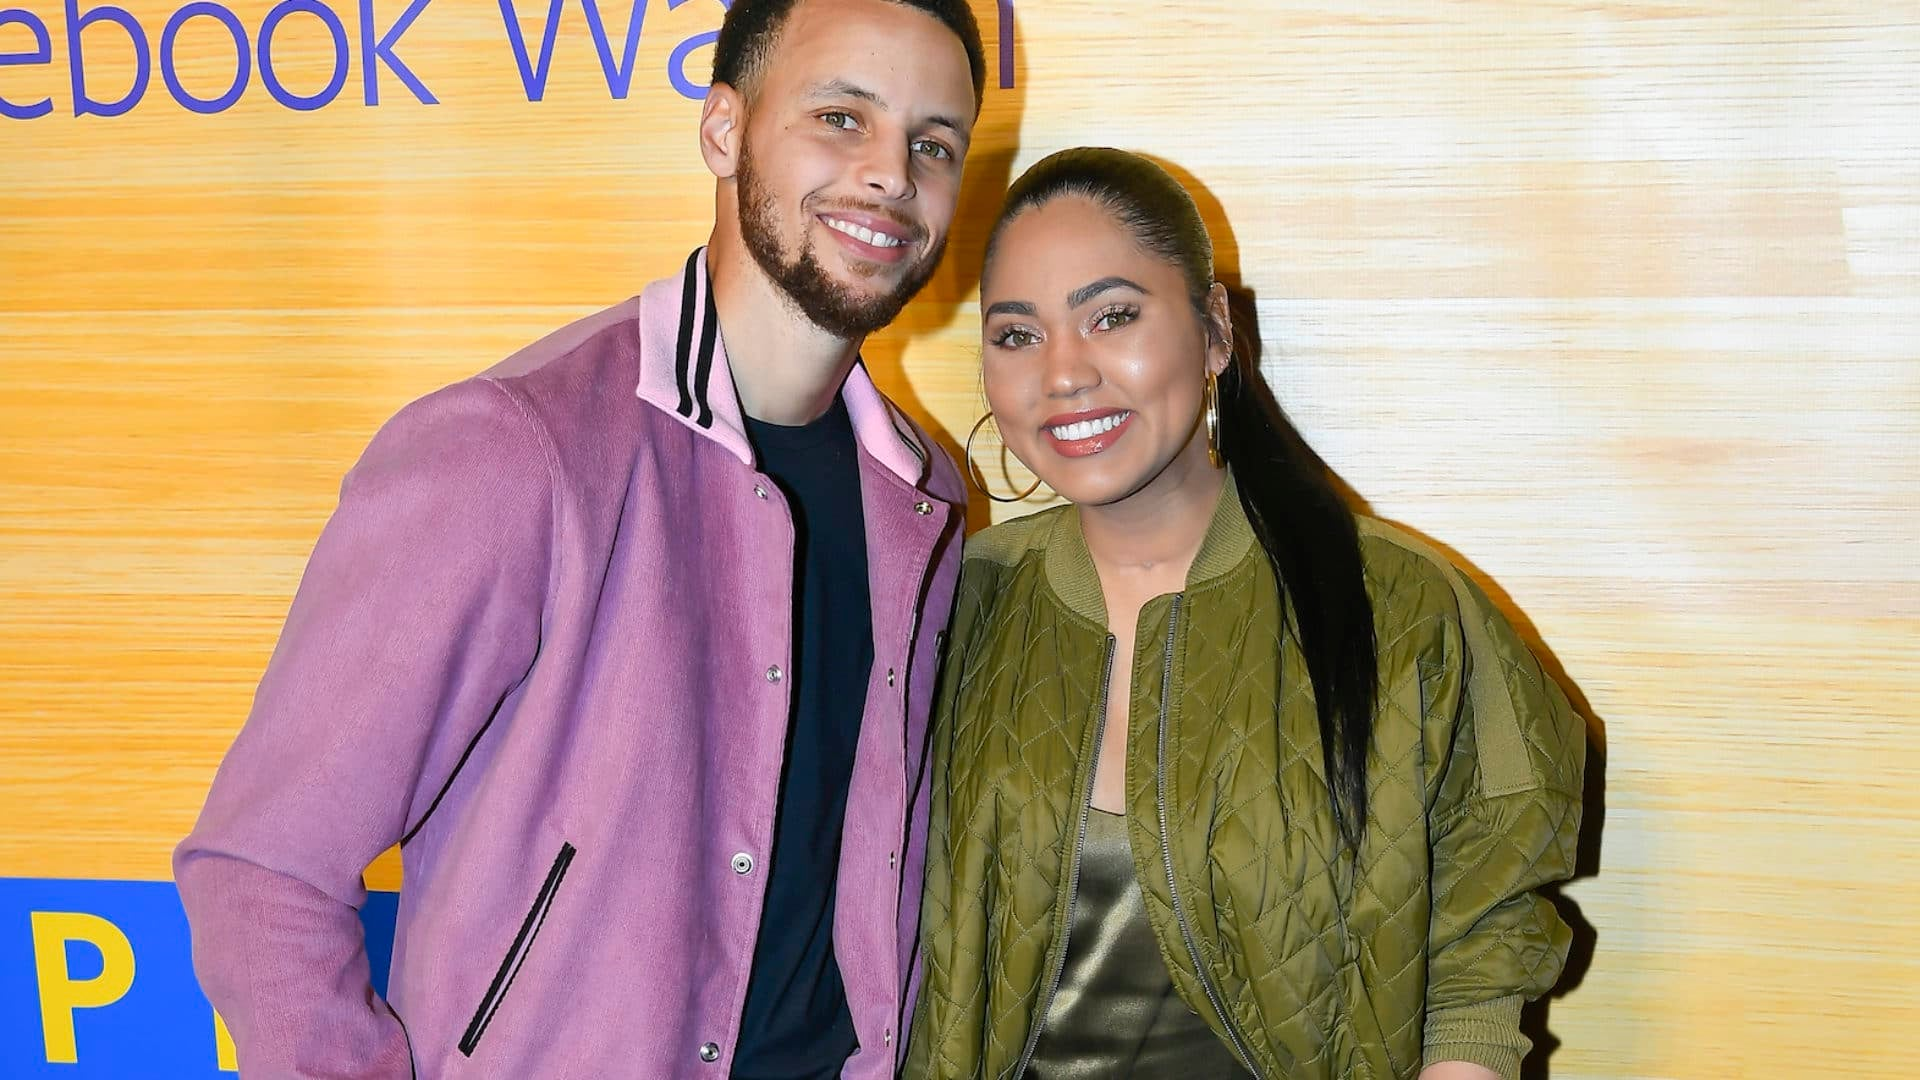 Steph Curry Is 'Proud' Of Wife Ayesha Following Honest 'Red Table Talk'